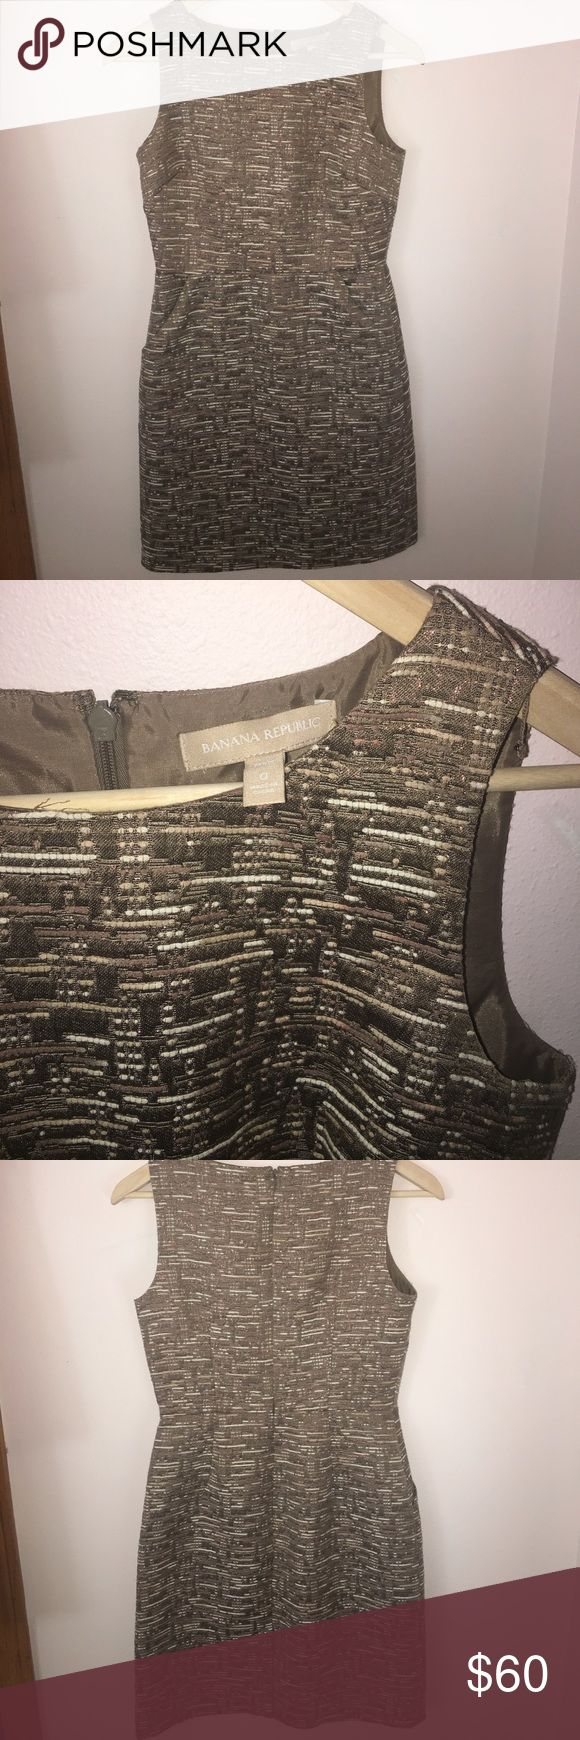 Banana Republic holiday dress! Beautiful tan and off white patterned dress with pockets, size 0 petite! Worn once for a Christmas party. Perfect dress for a night out! Banana Republic Dresses Mini